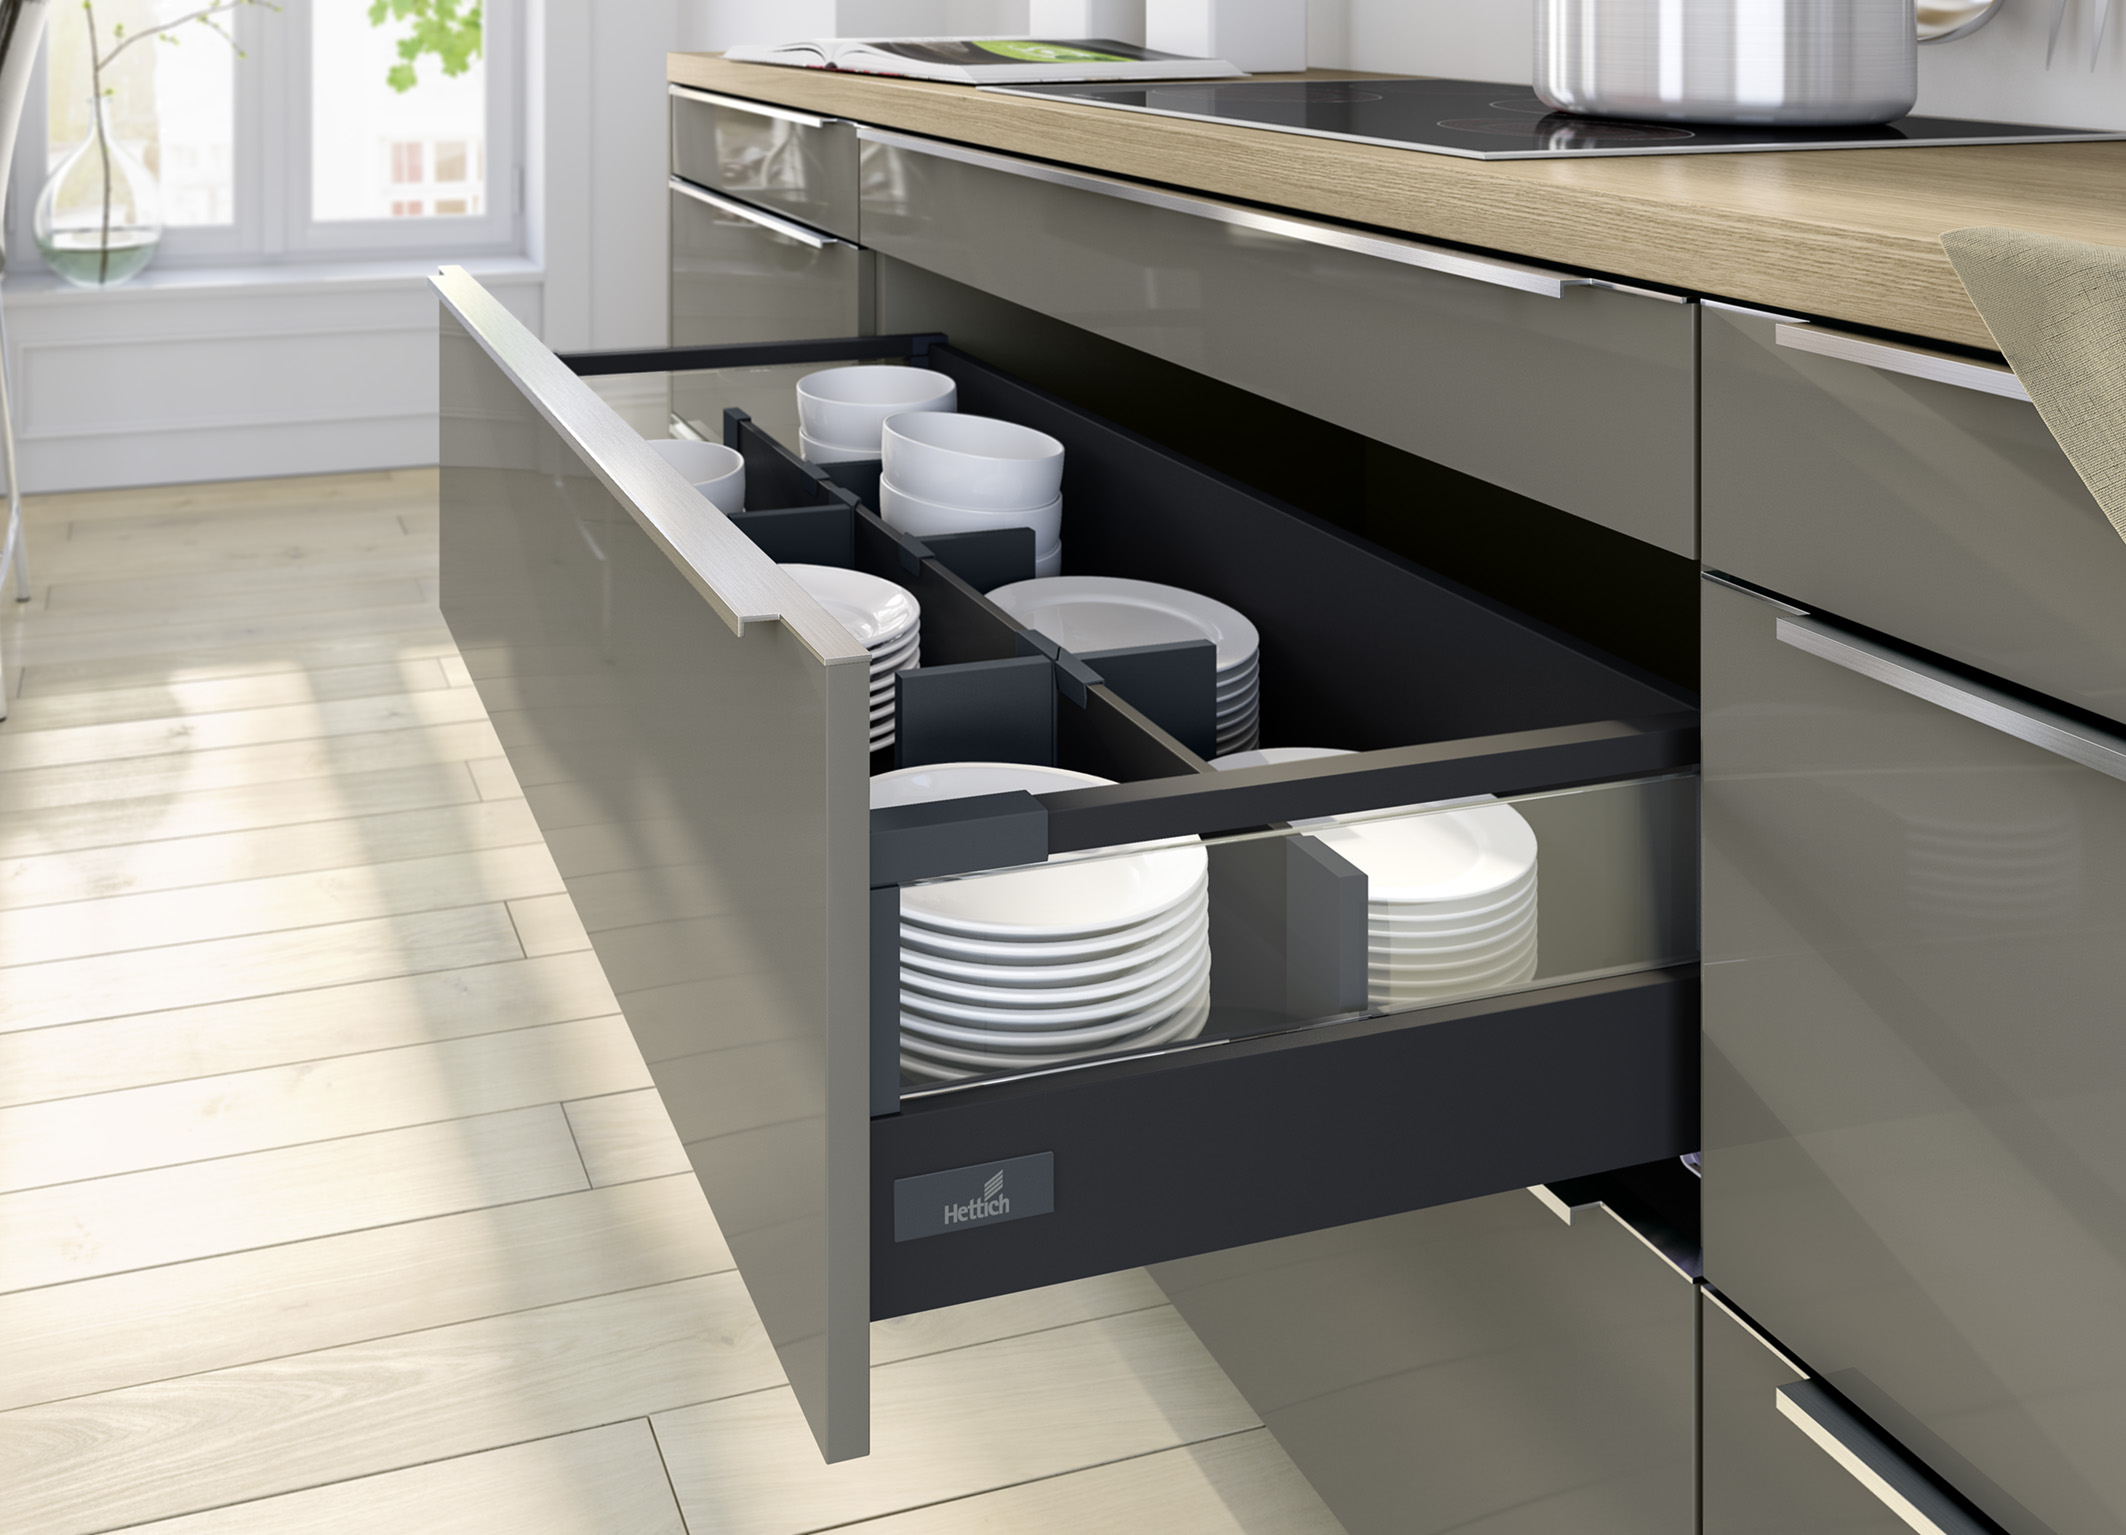 French Country Kitchen Designs Drawer Systems Hettich